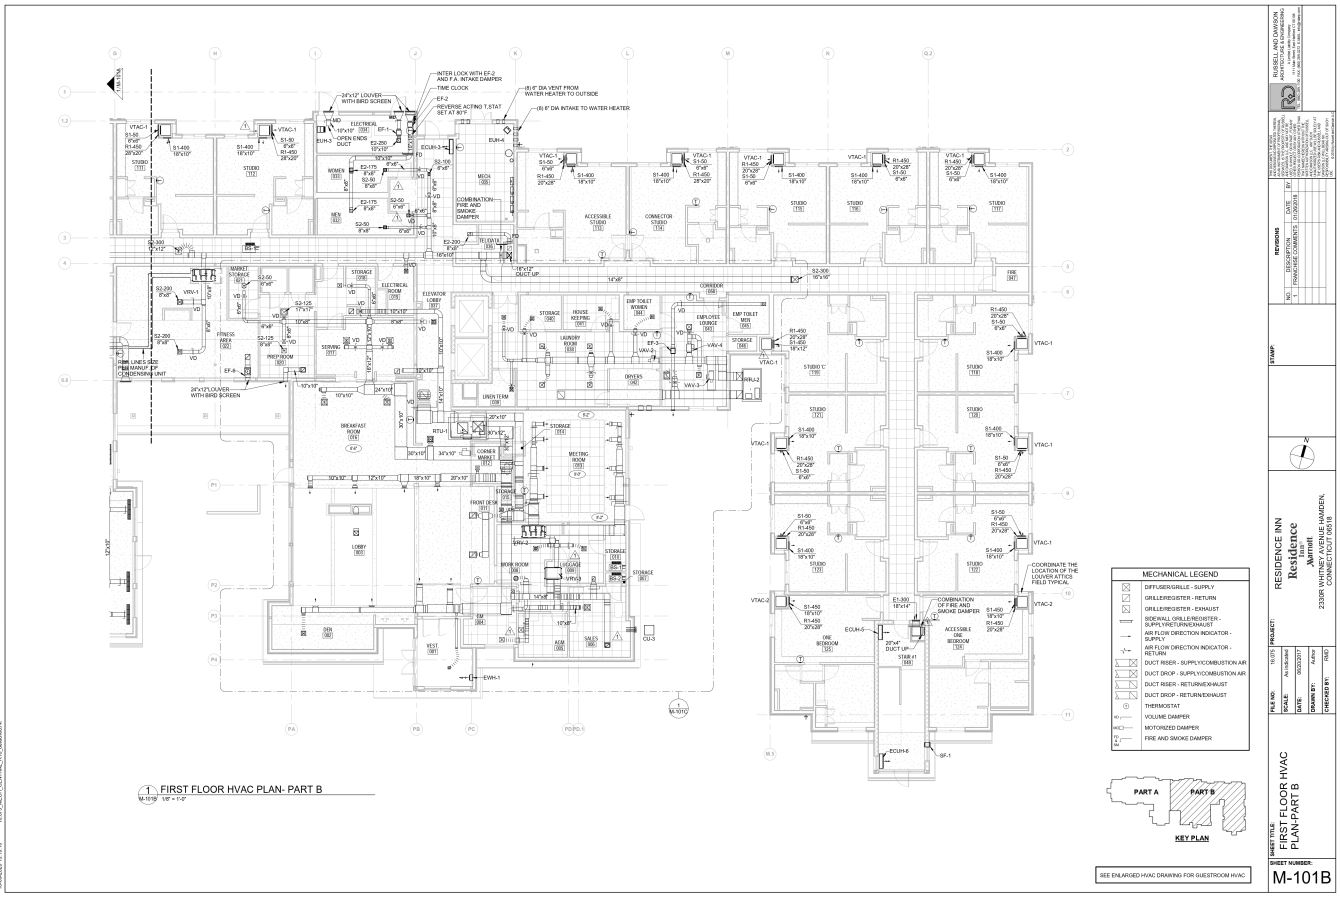 Mechanical HVAC Floor Plan